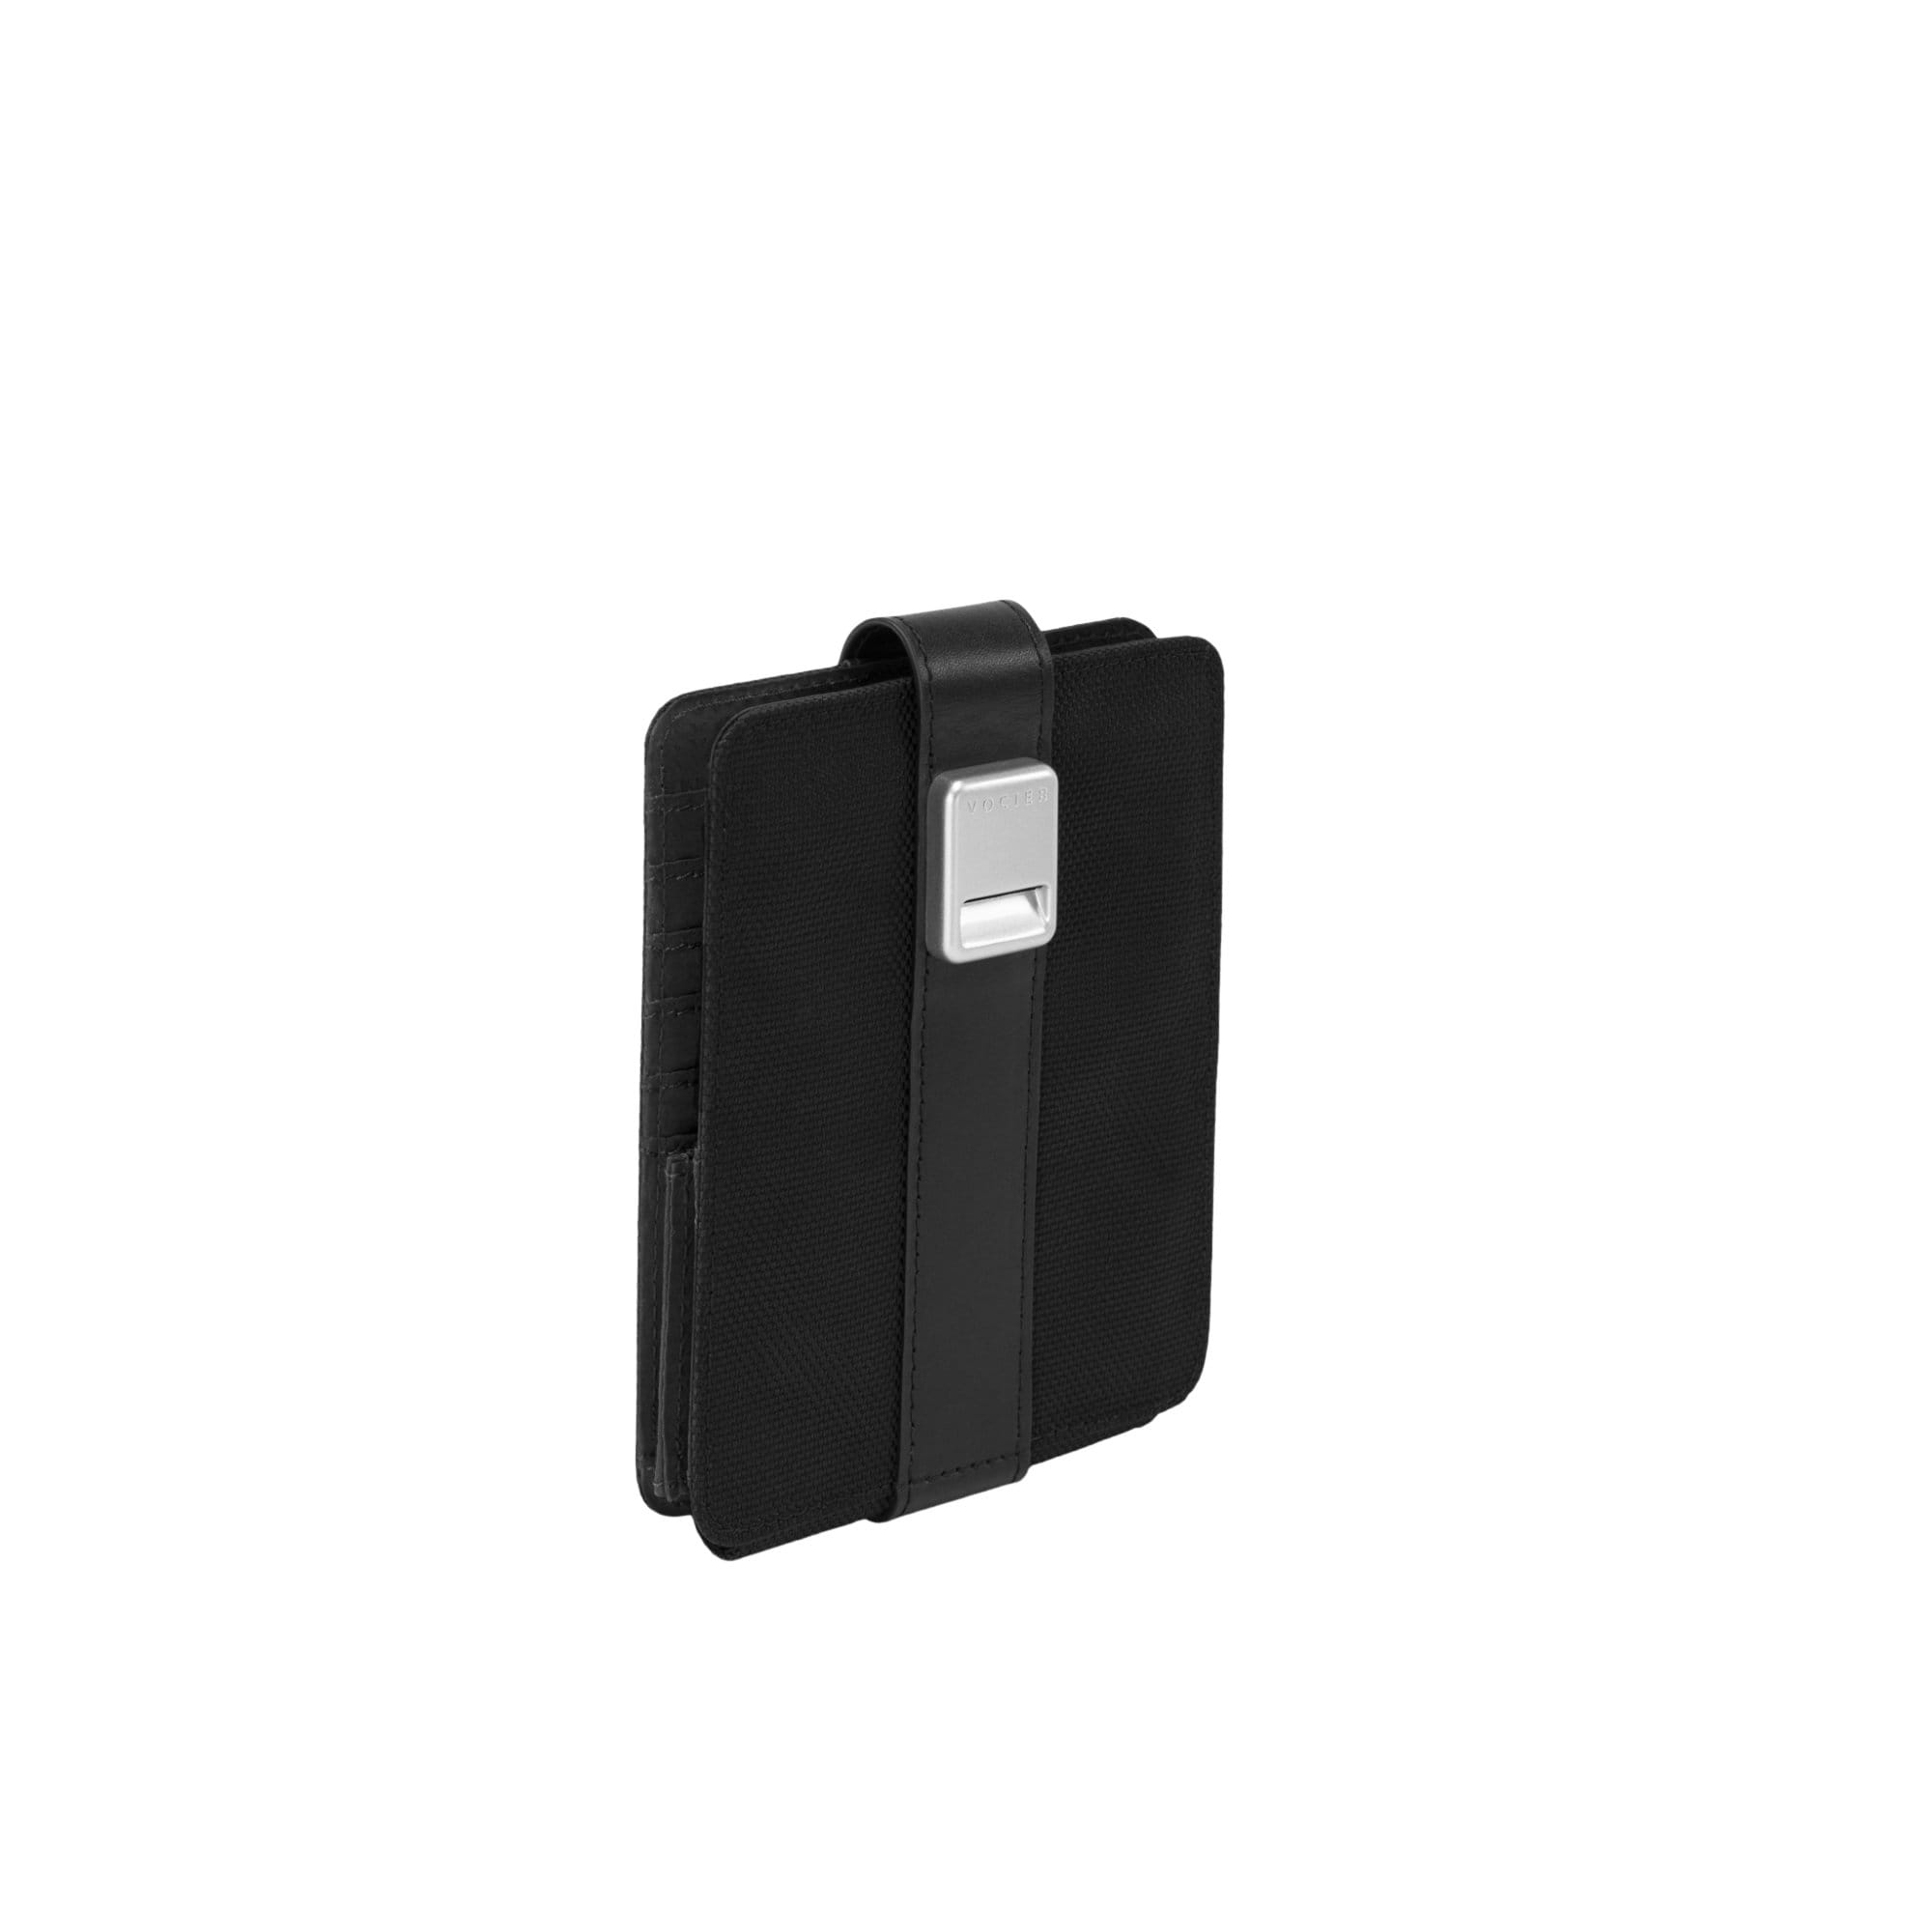 Vocier Travel Accessories Avant Small Travel Wallet